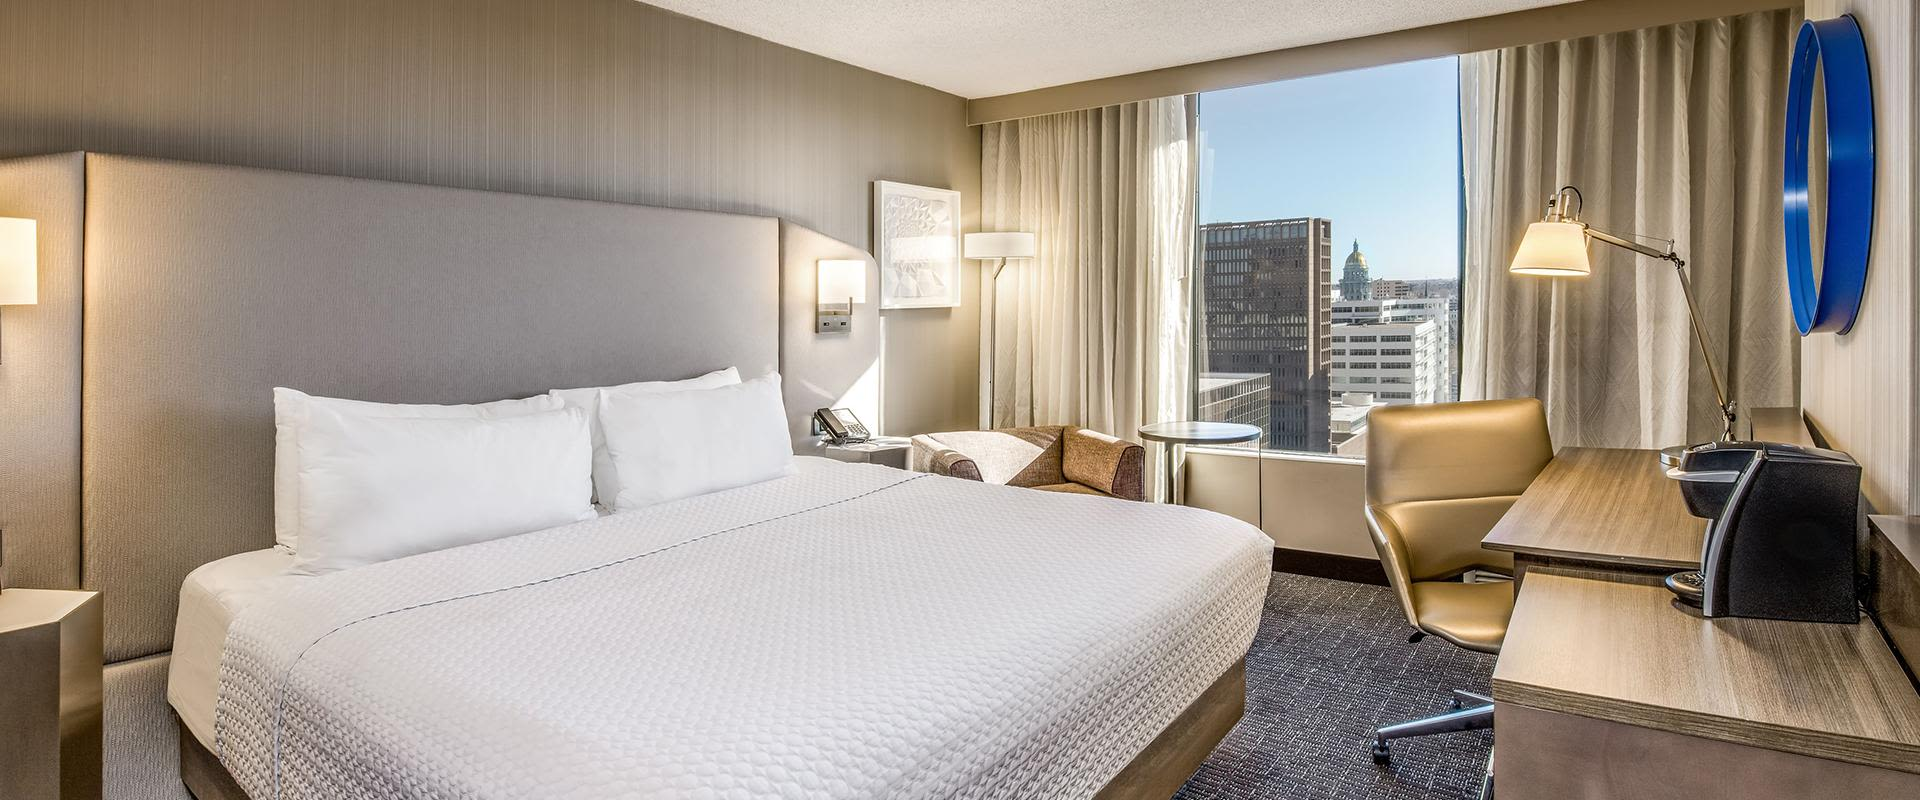 Denver King Room With City View